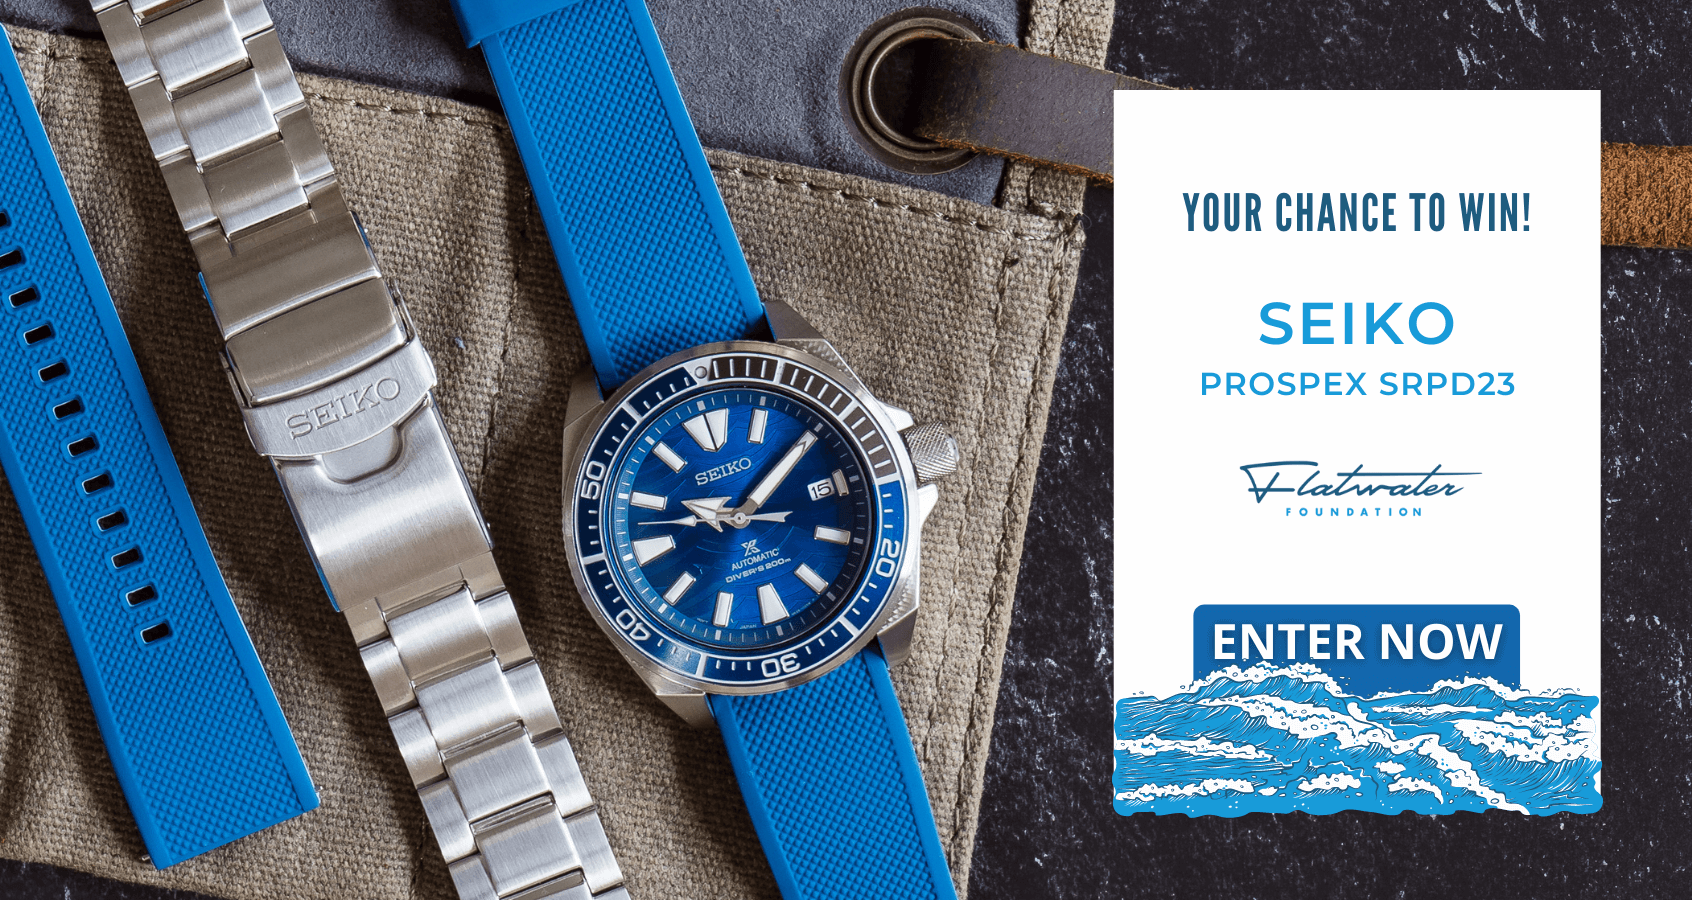 Seiko Watch + Flatwater Band Giveaway Giveaway Image